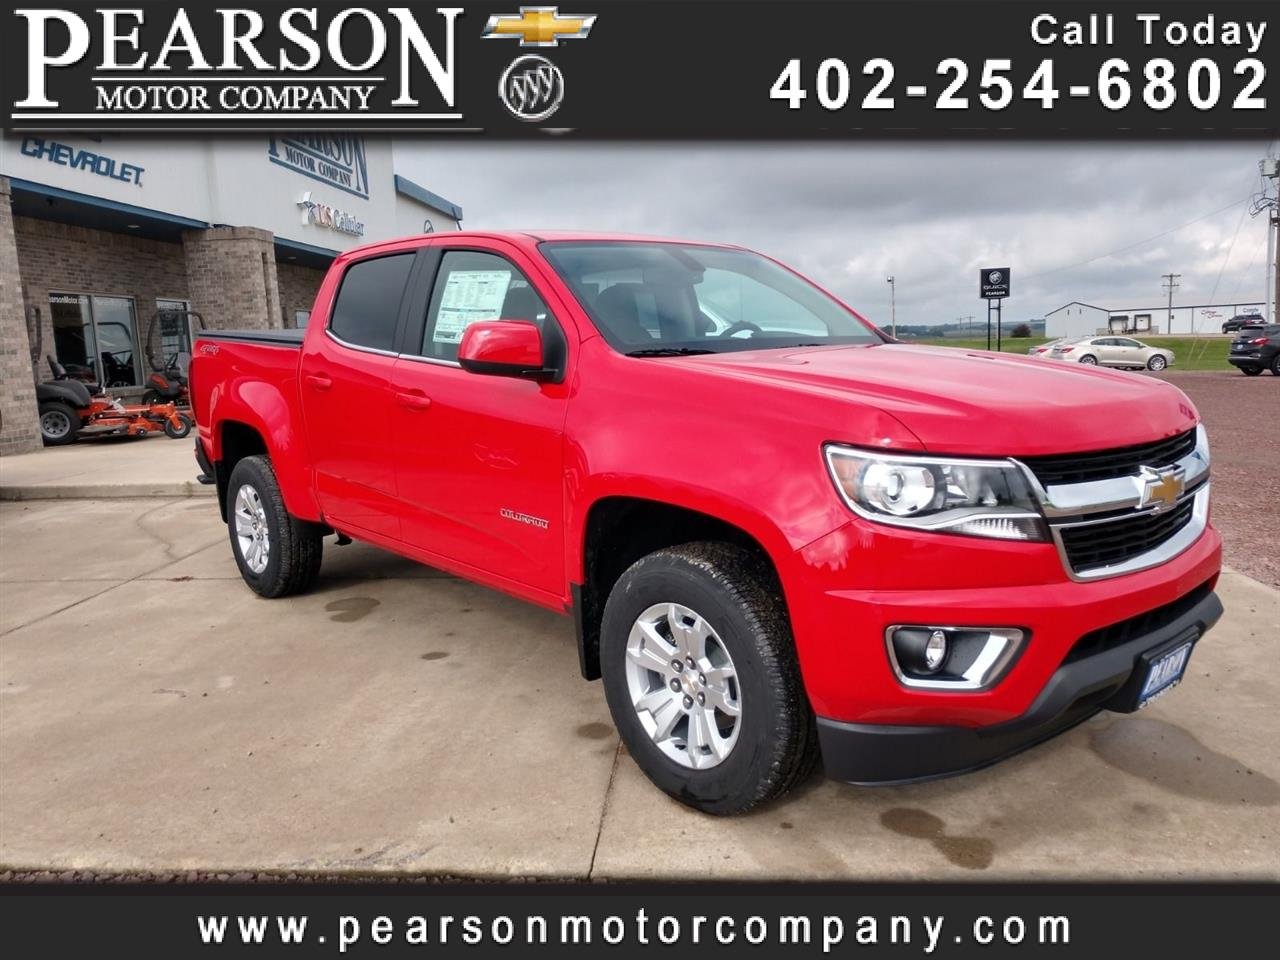 2020 Chevrolet Colorado LT Crew Cab 4WD Short Box